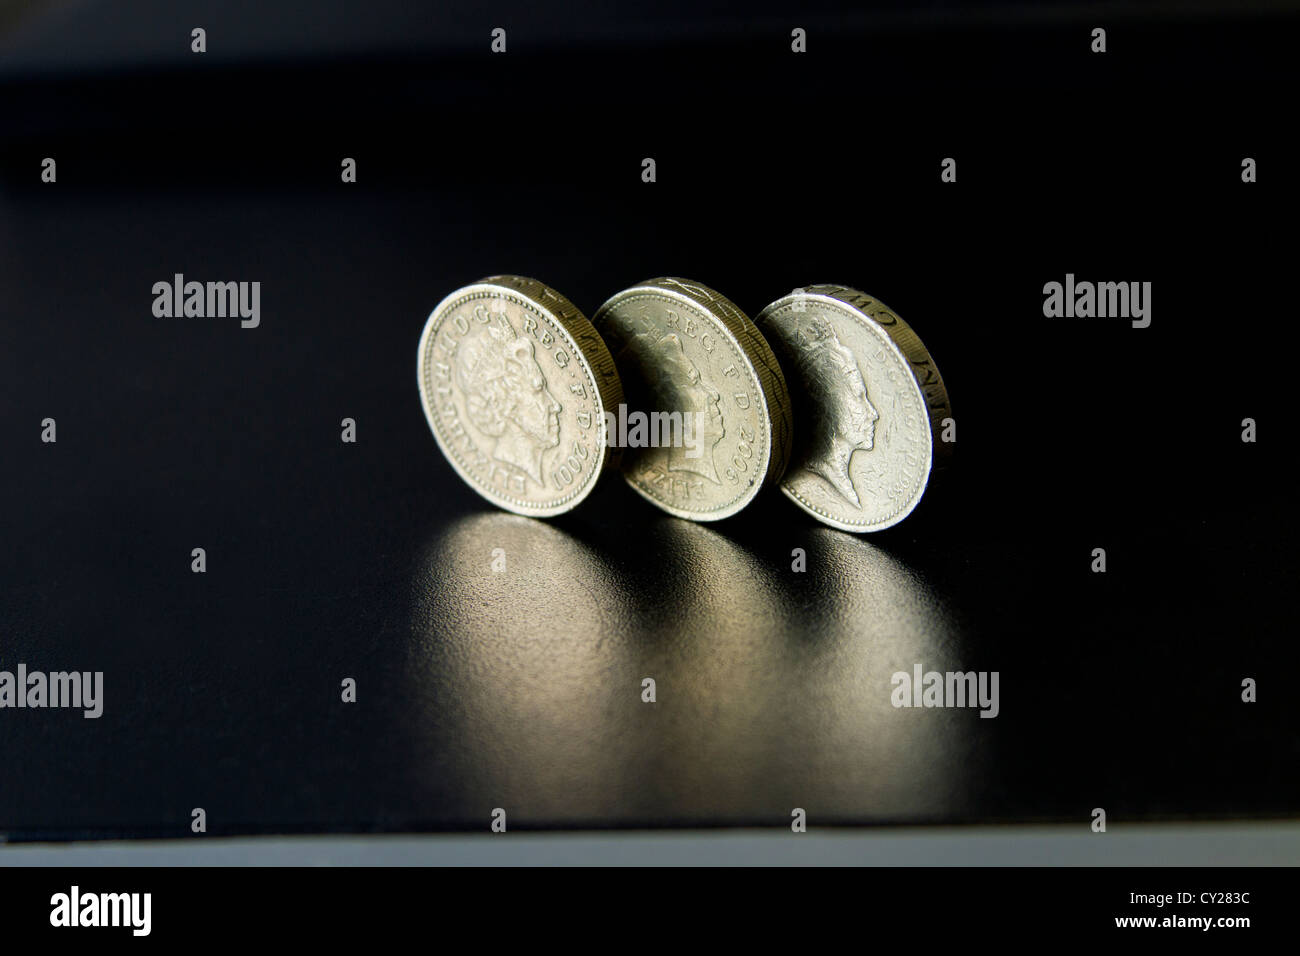 Three UK pounds side to side on a reflective black surface - Stock Image